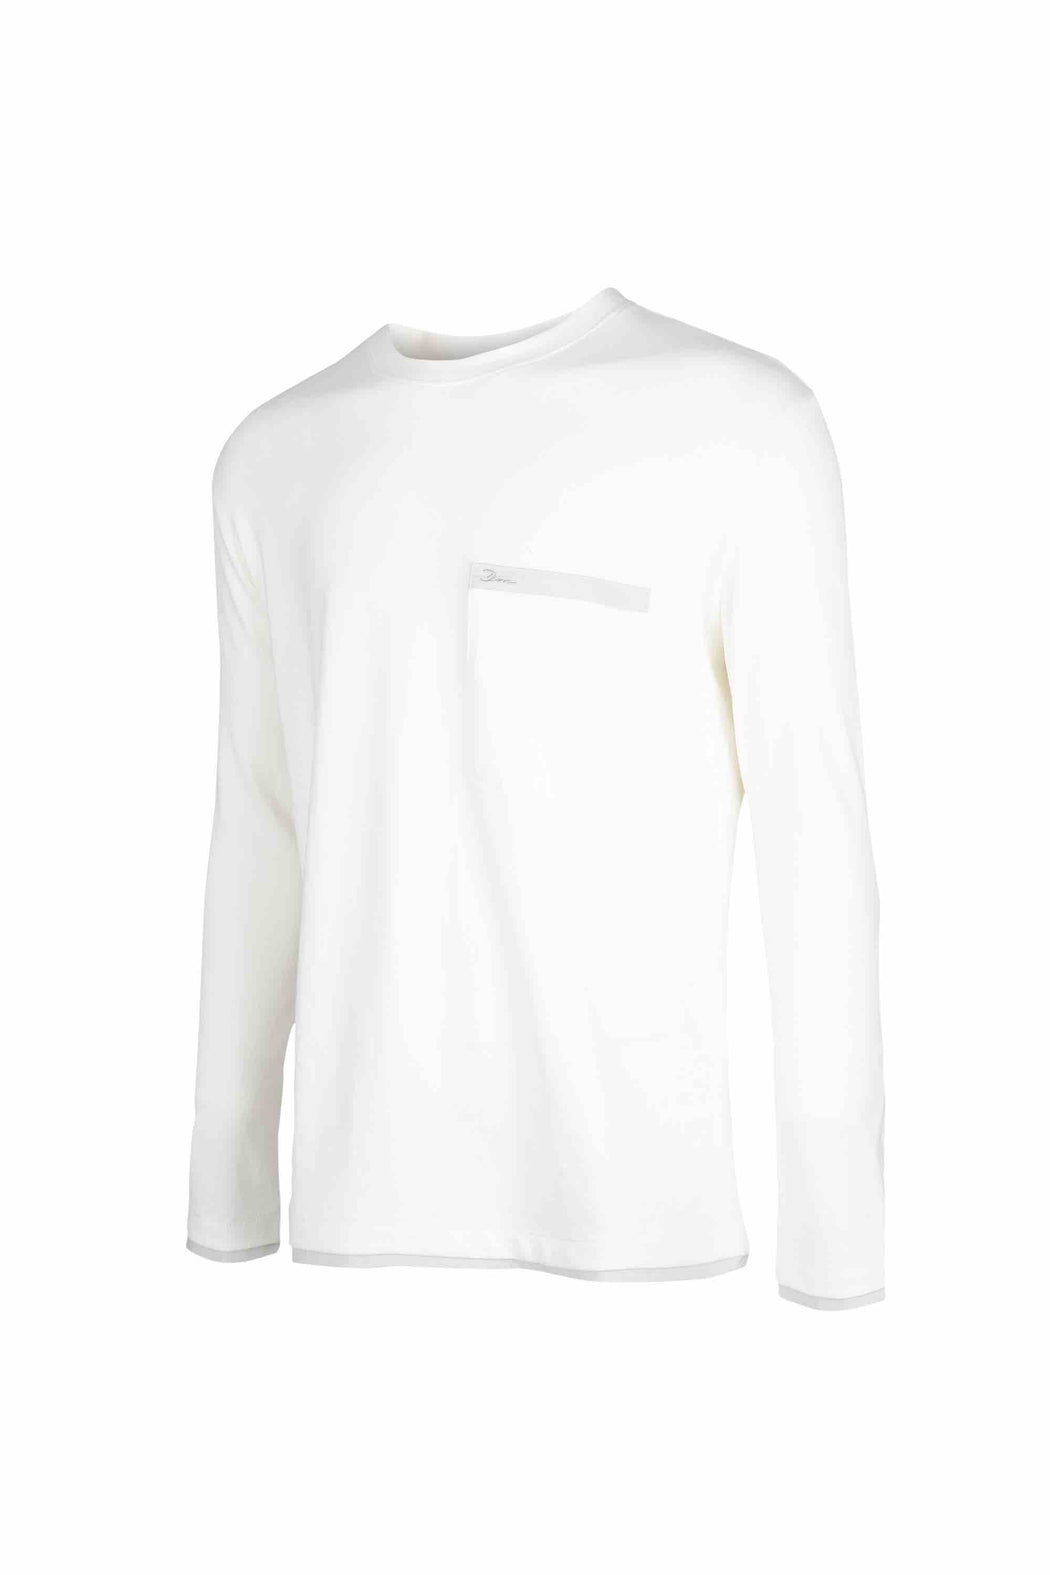 Side view of Men Back Print Long Sleeve T-Shirt made with Organic Cotton in White